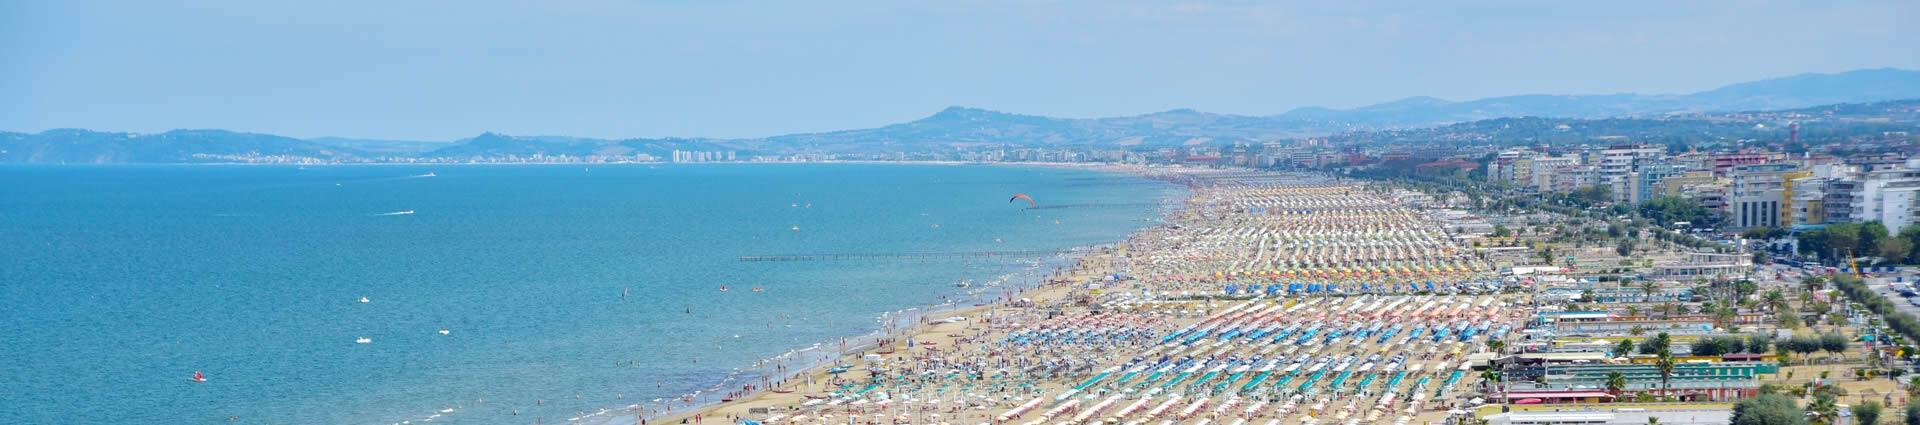 hotelsole it offerta-speciale-challenge-riccione-2021 008